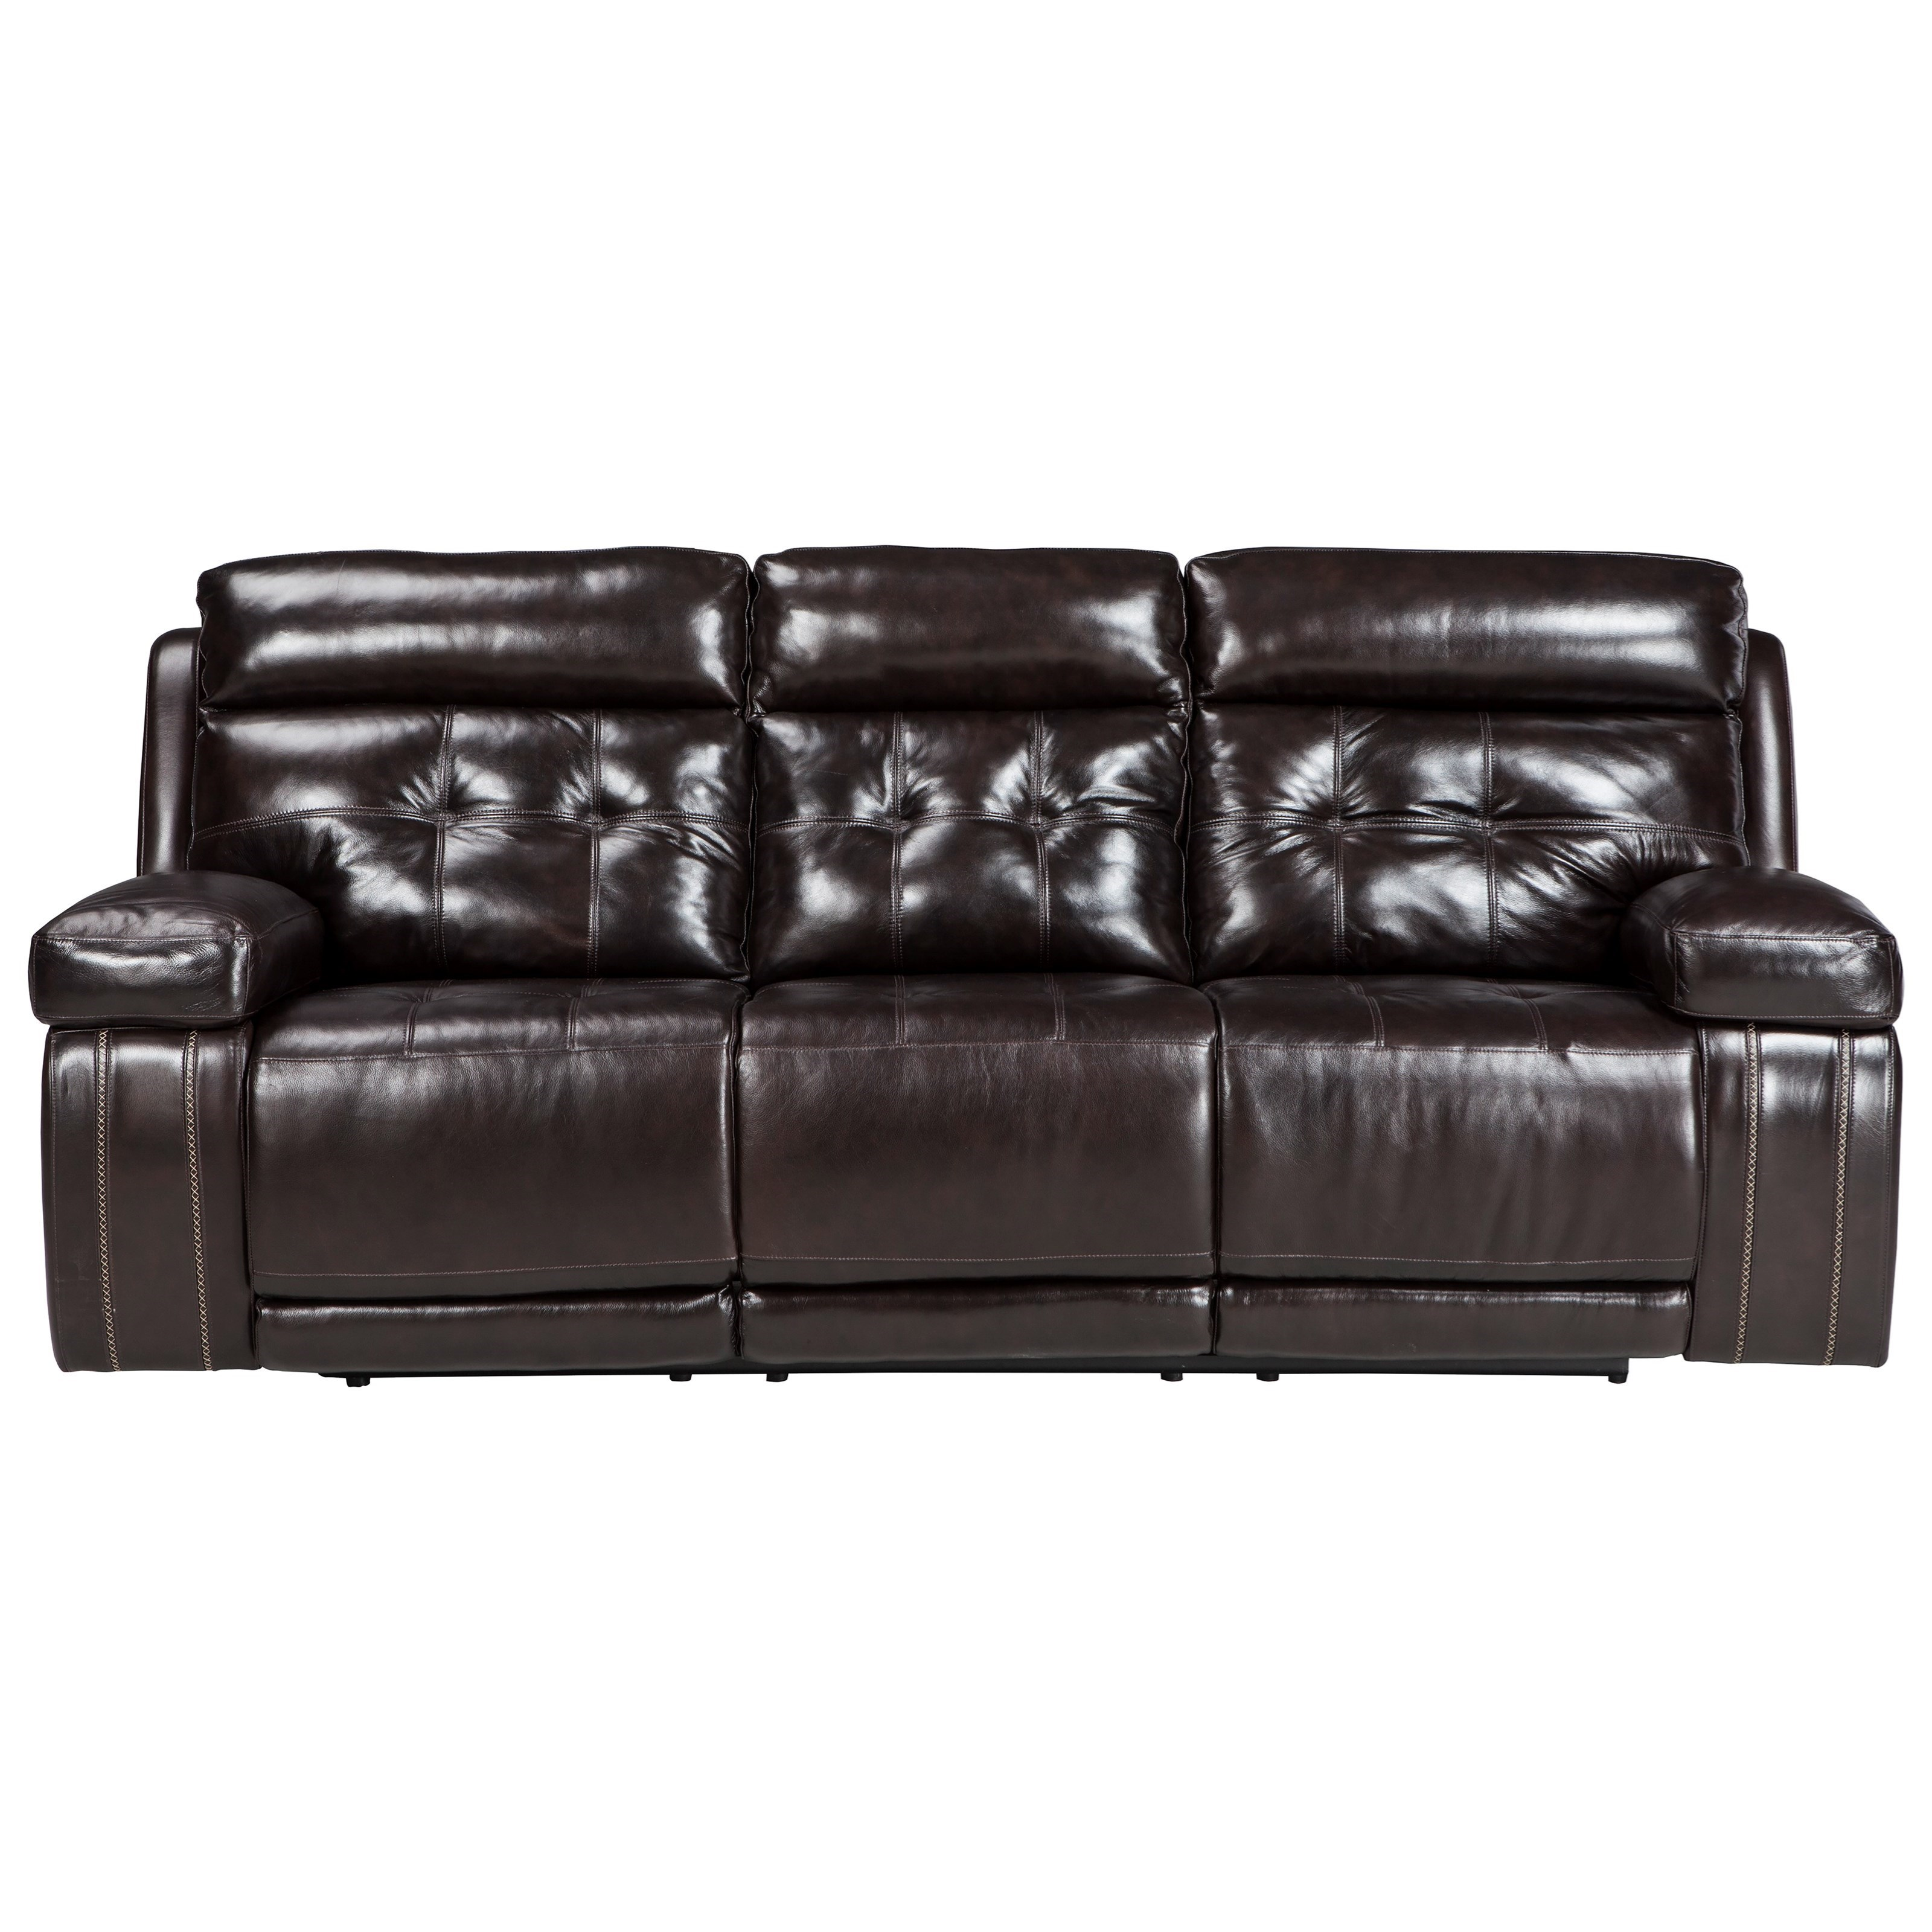 Signature Design By Ashley Graford Power Reclining Sofa W/ Adjustable  Headrest   Item Number: